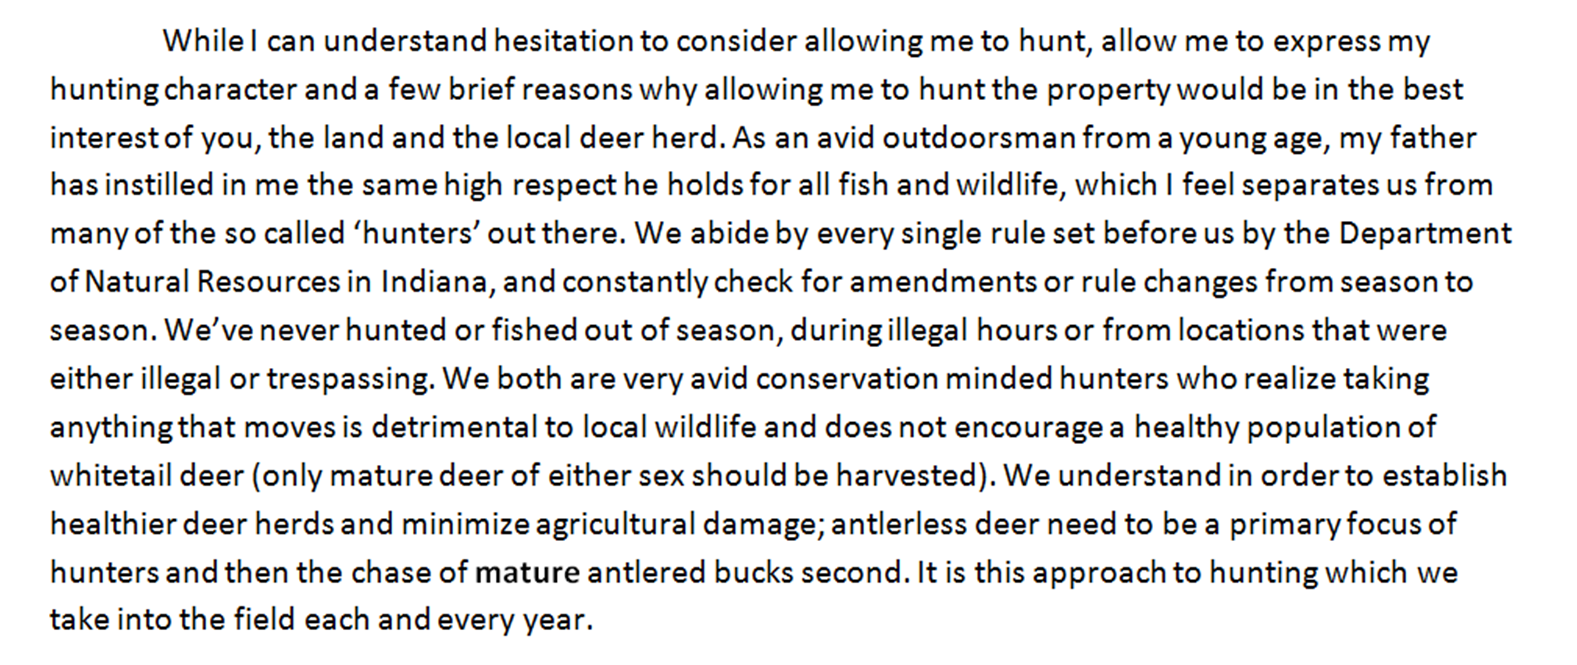 Okay So Ive Described What Type Of Hunter I Am HONESTLY Now State How Will Act On His Or Her Property